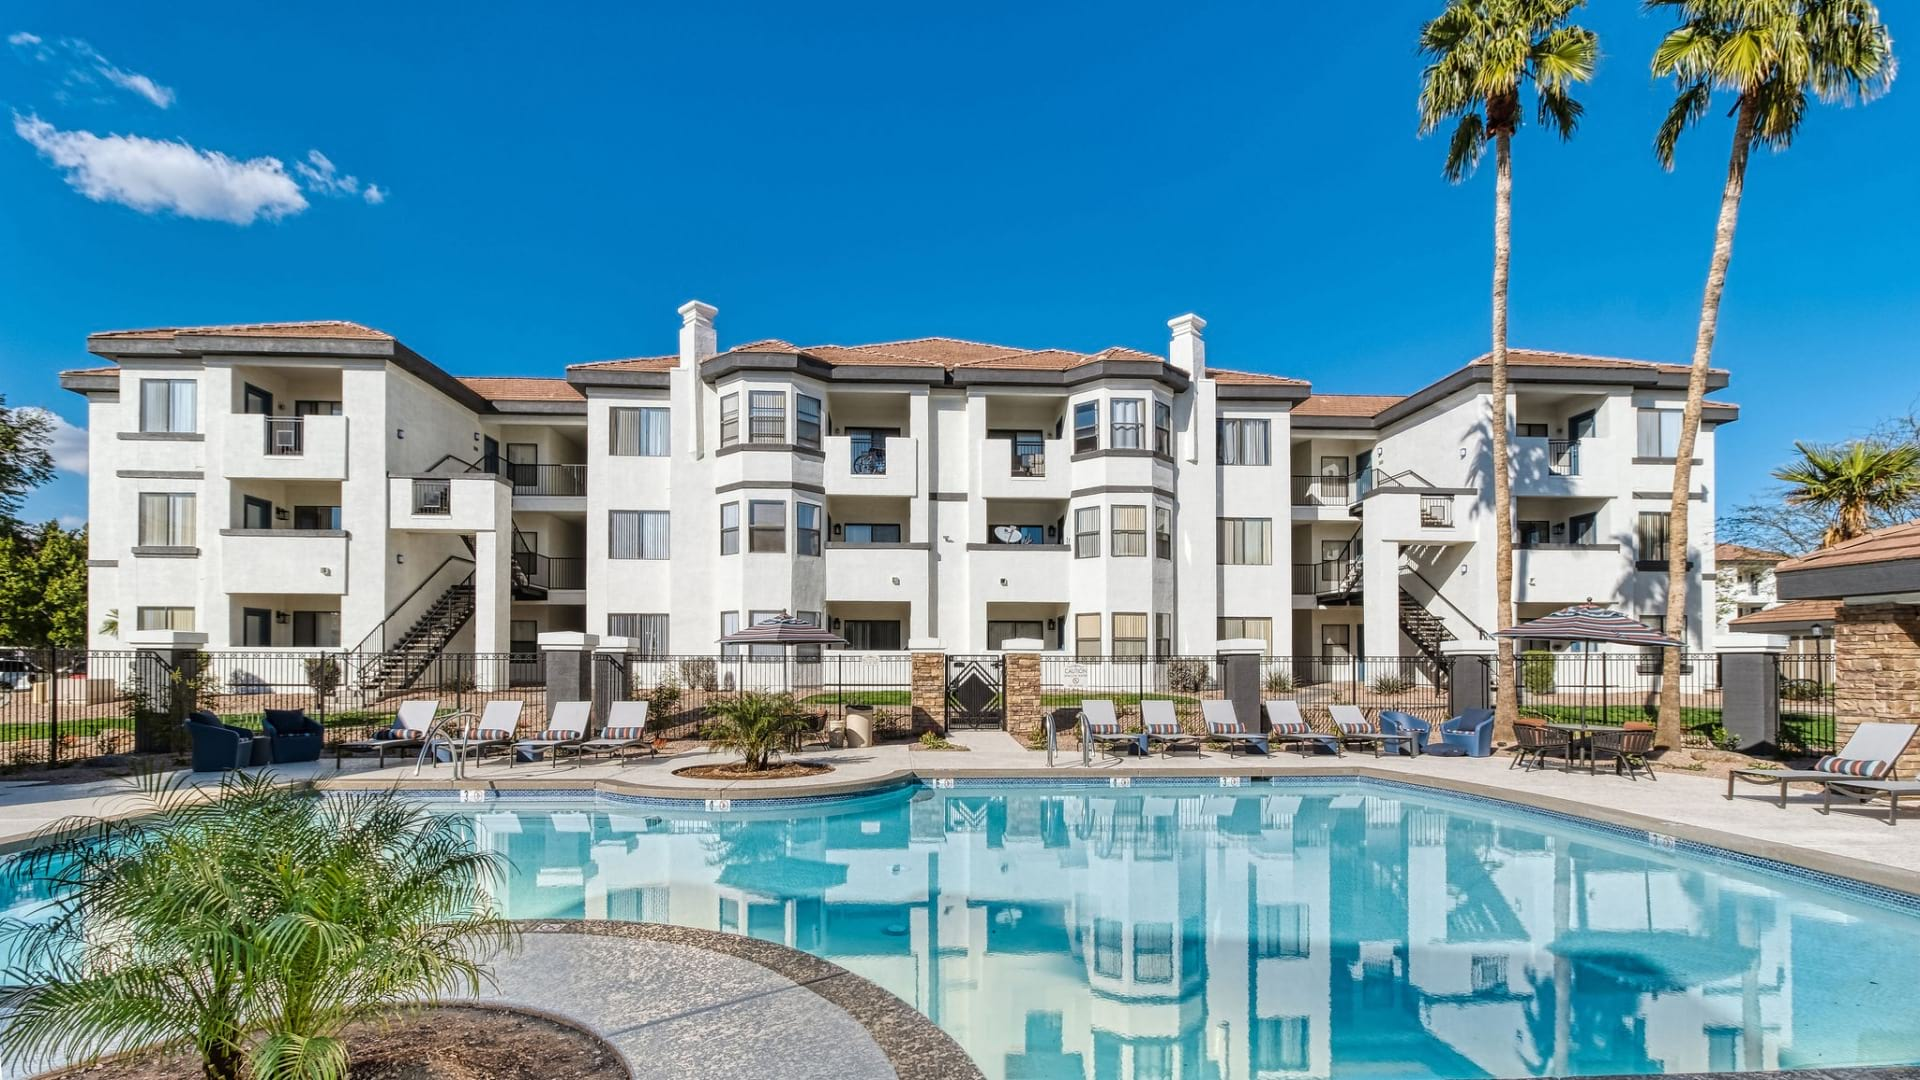 Cortland Red Mountain apartments near Papago Park